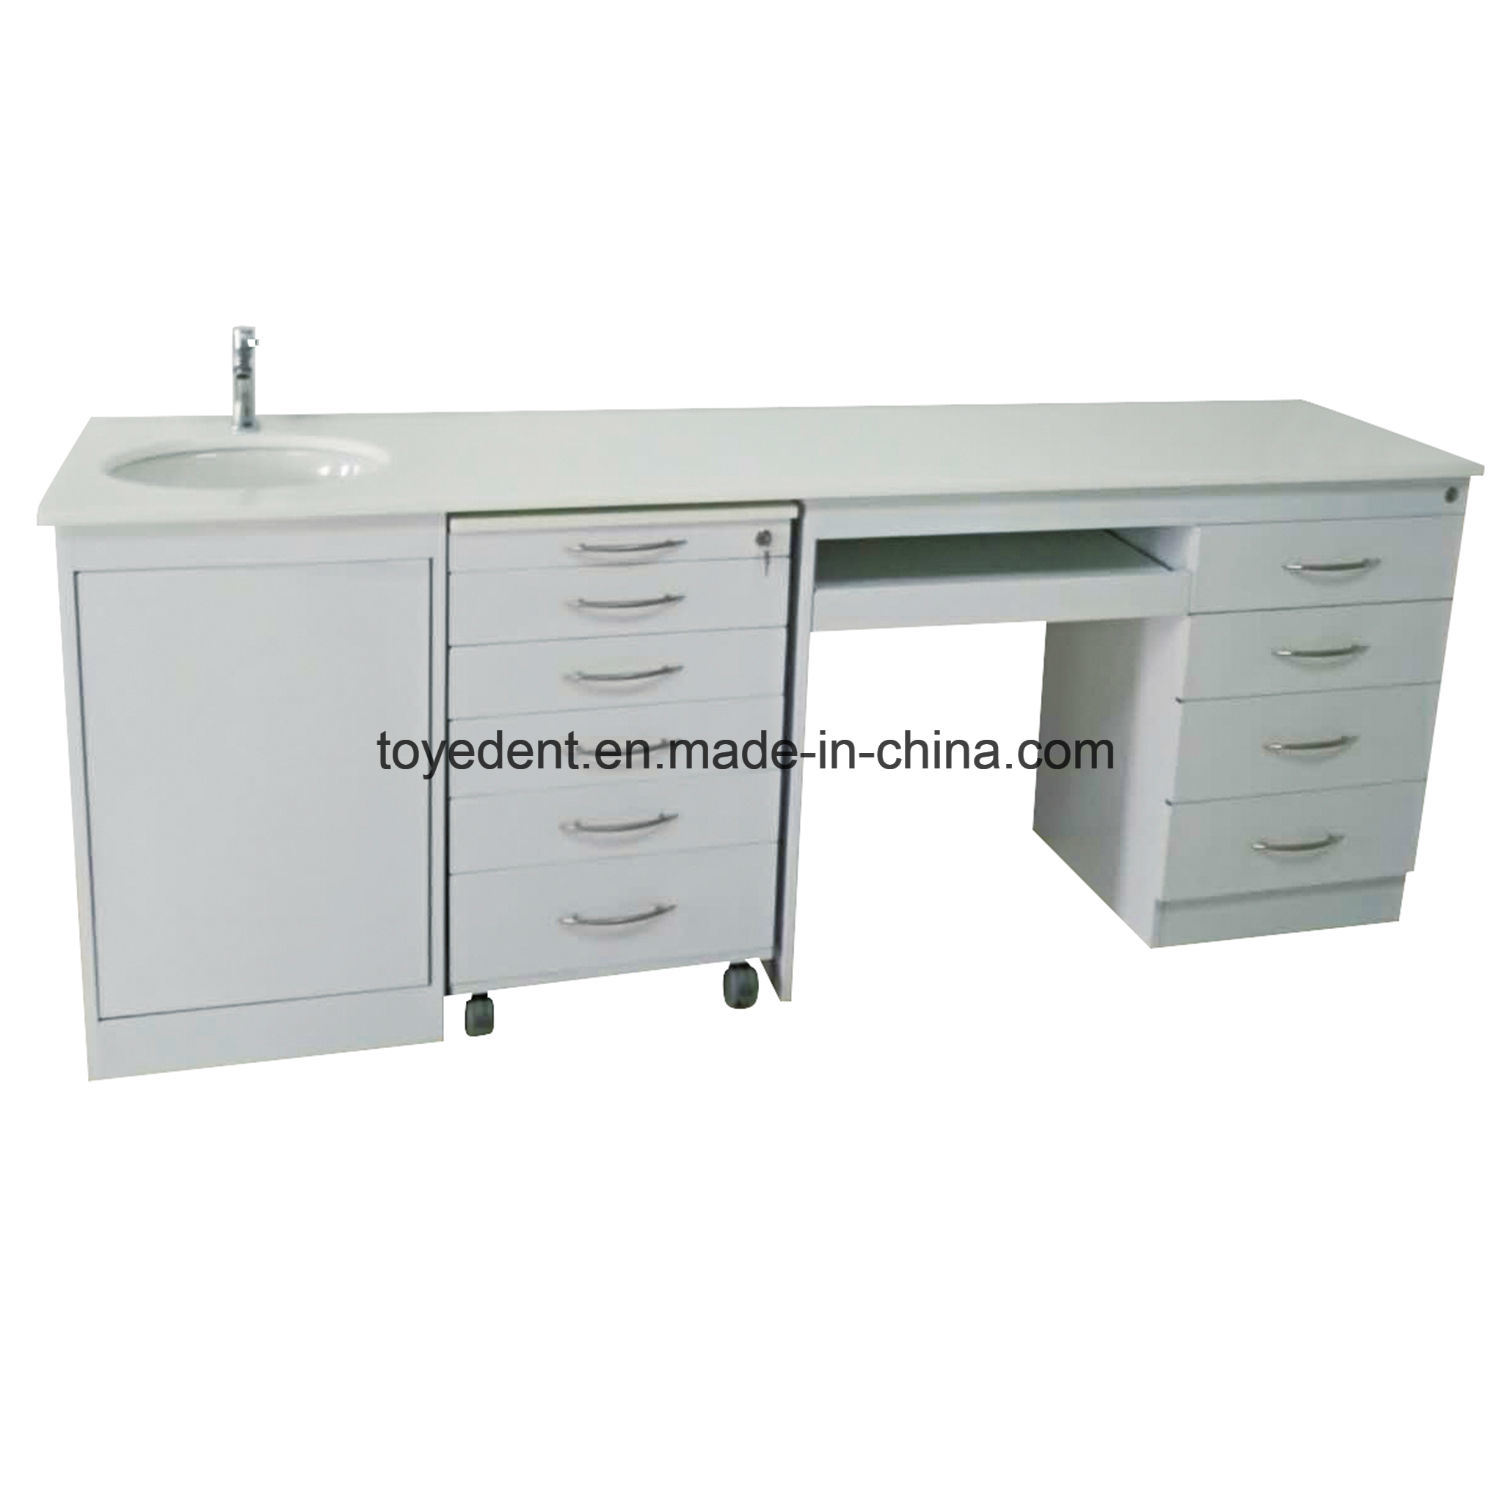 Photo De Cabinet Medical [hot item] stainless steel dental cabinet medical furniture with cheaper  price.